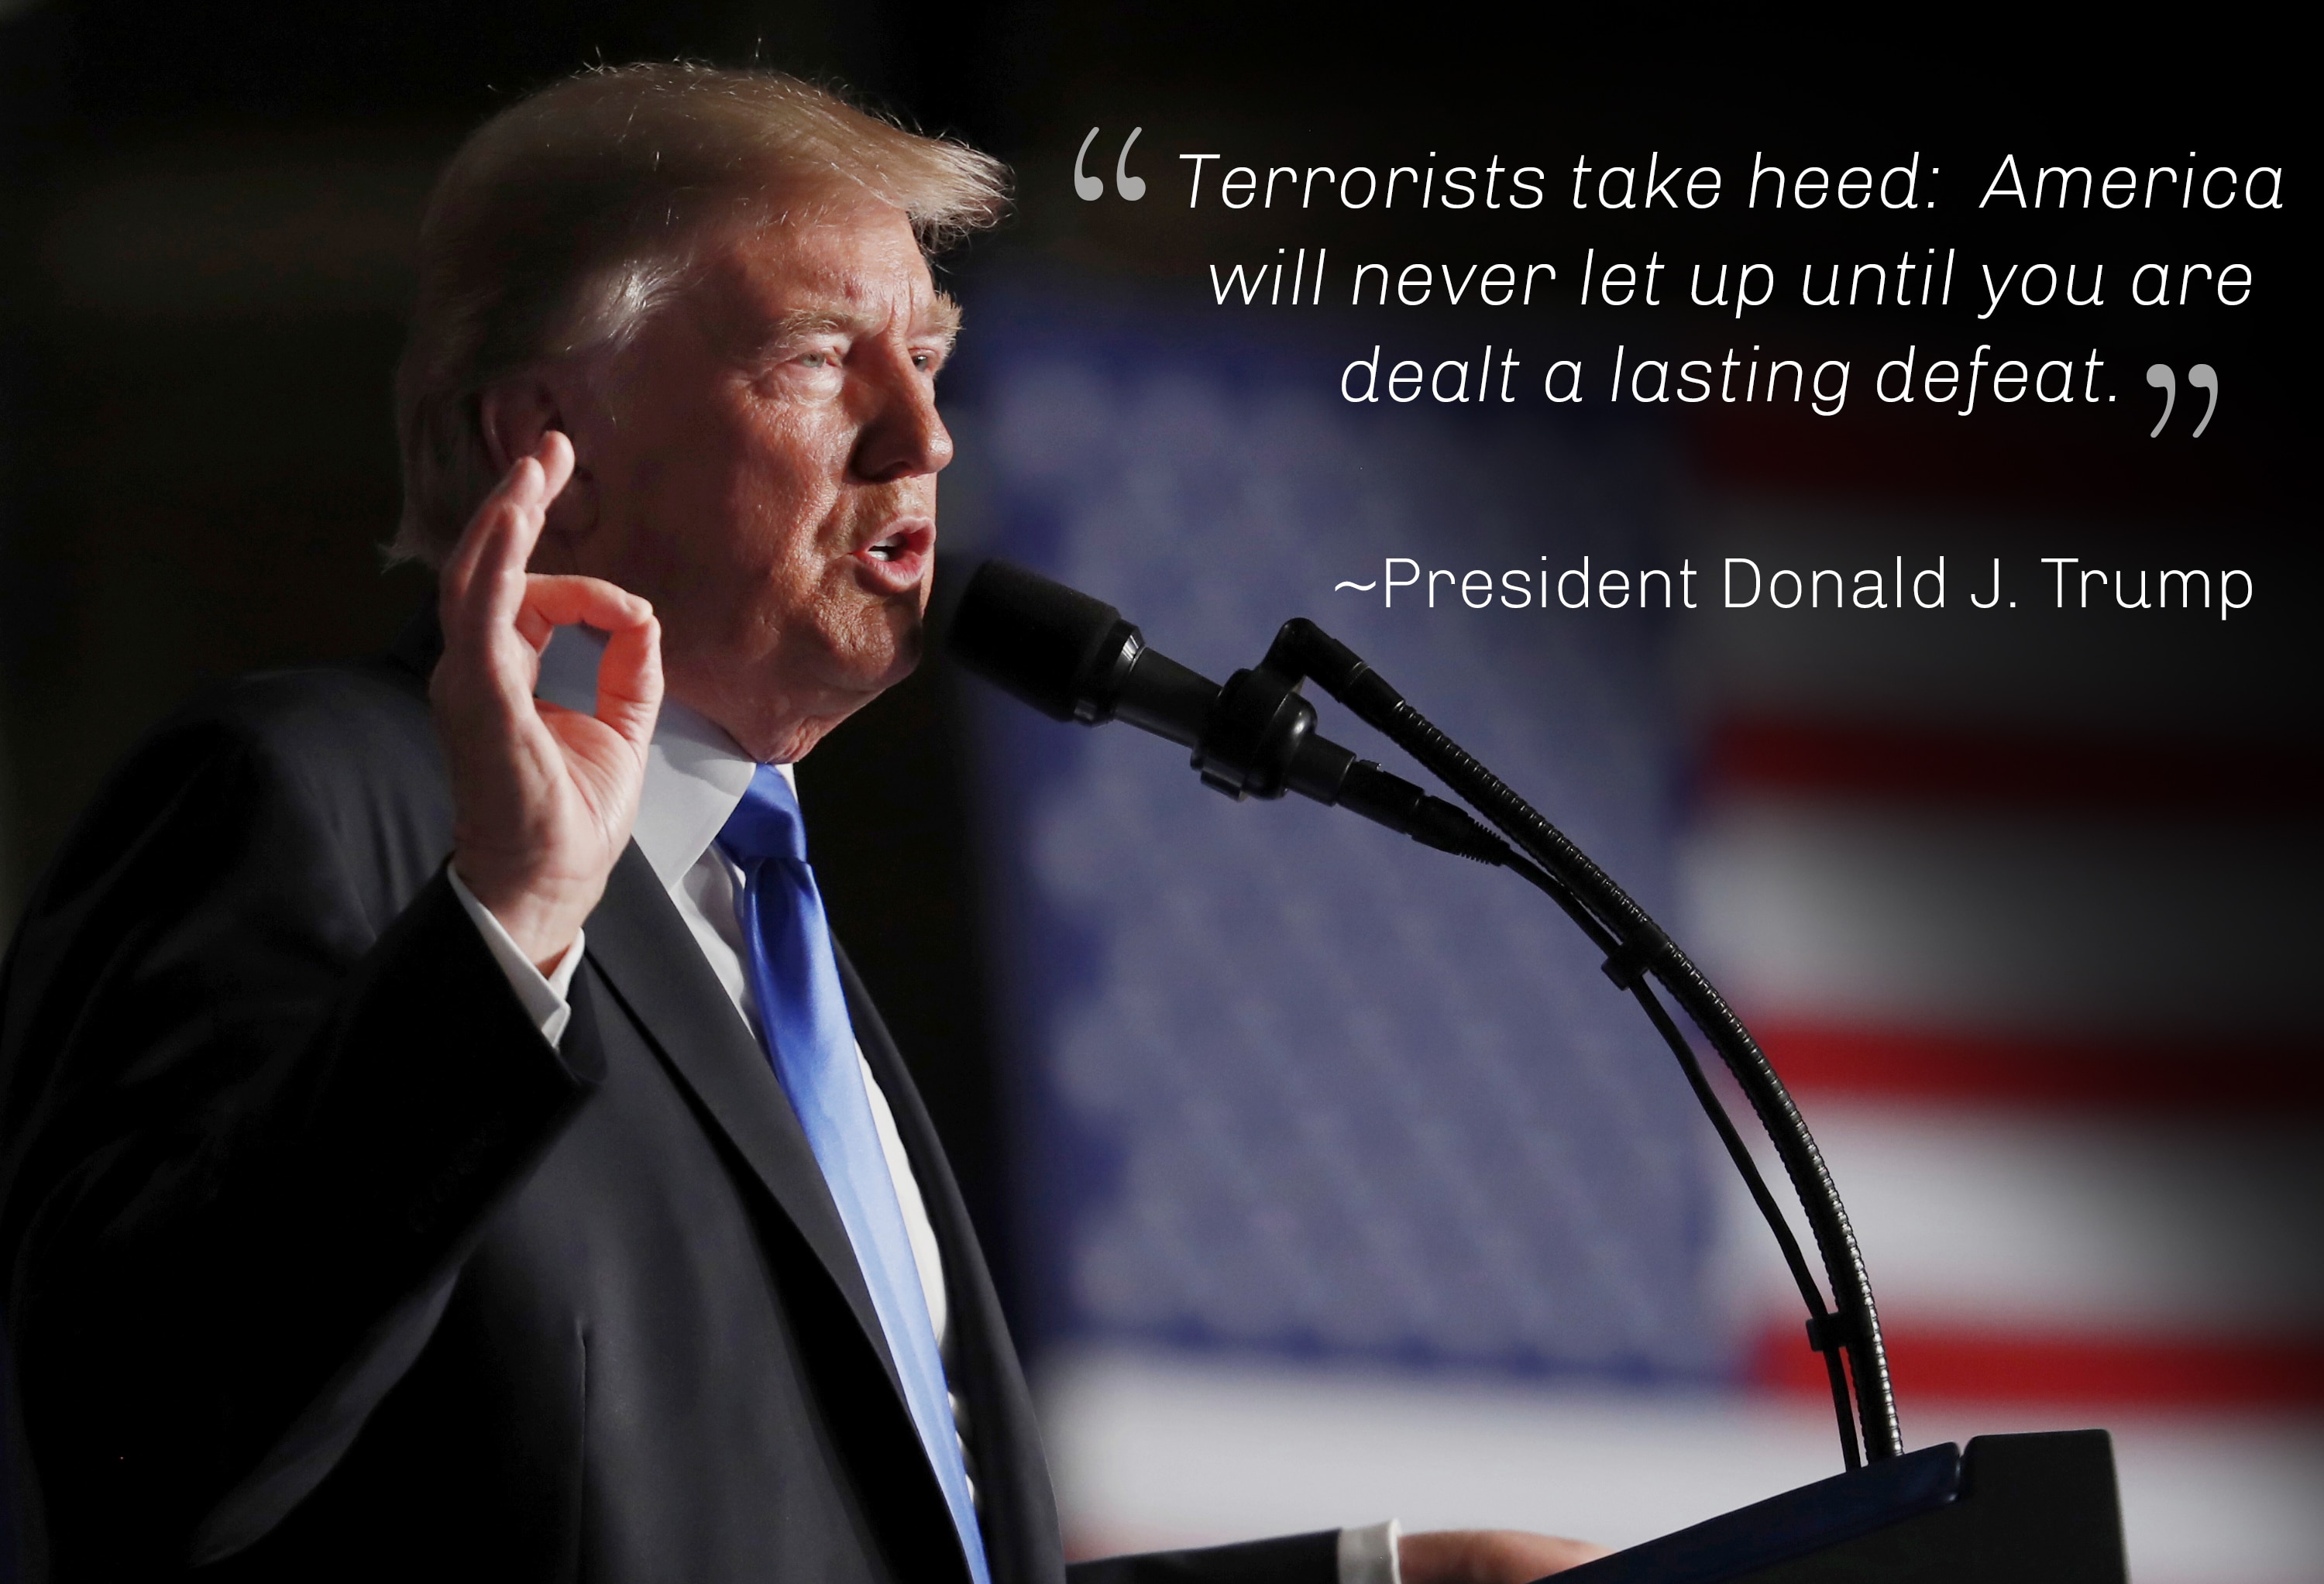 President Trump at podium saying 'Terrorists take heed ...' (© AP Images)